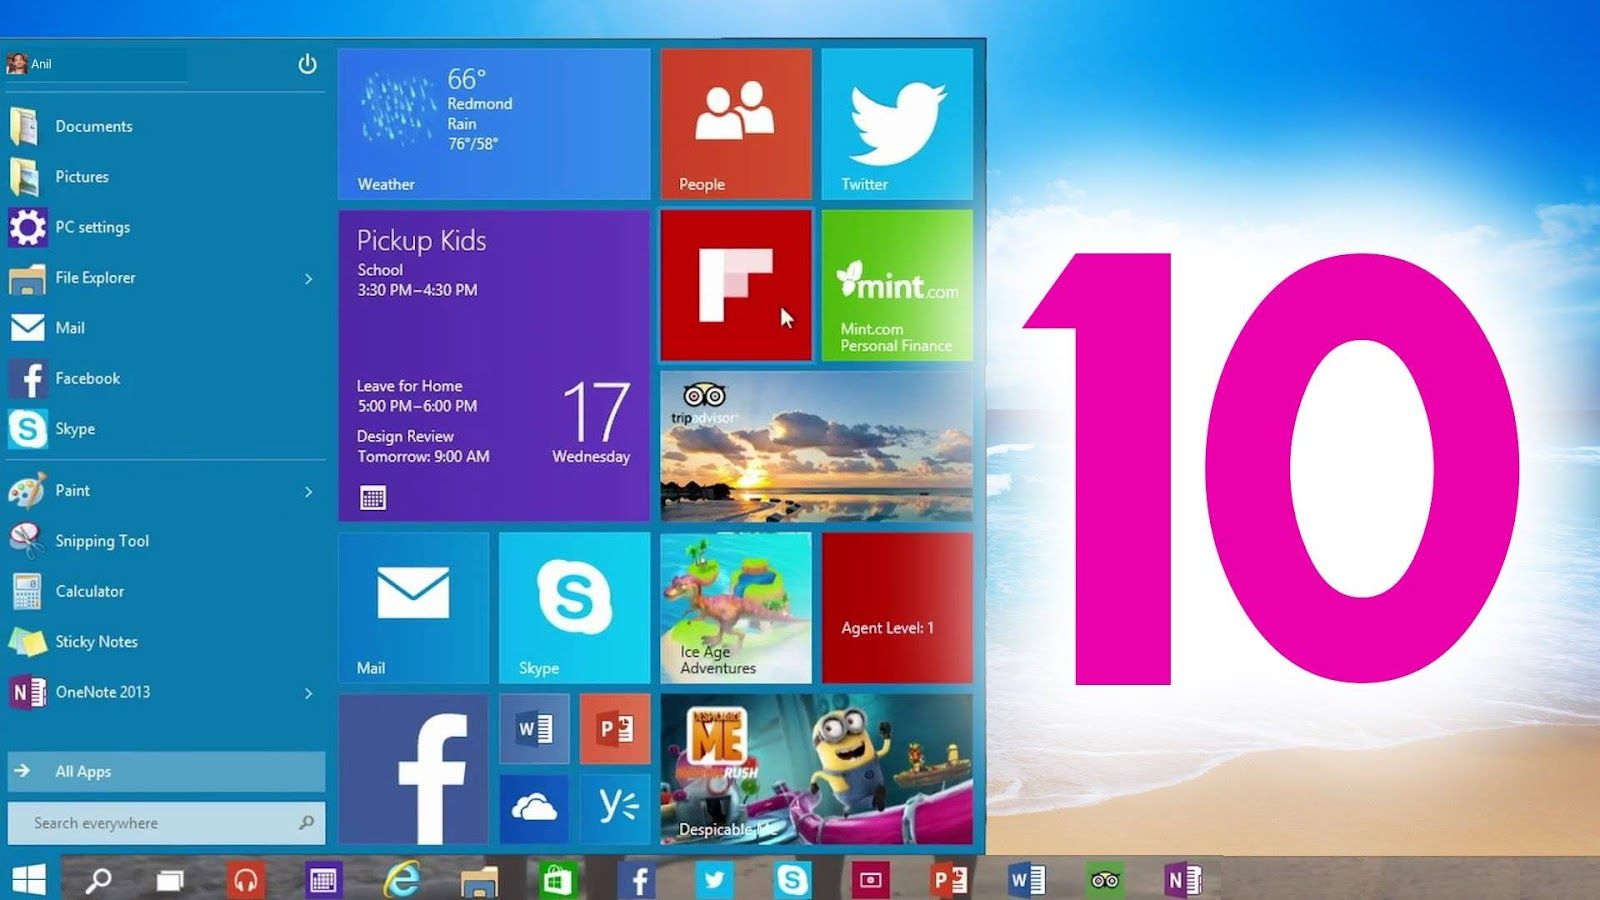 Cheap windows 10 product key online win7 upgrade win10 tutorial for 342dg 6yjr8 x92gv v7dcv p4k27 oem dell oem windows7 dell ultimate activation key each major brand computer win7 win7 ultimate tomato garden oem ultimate ccuart Images